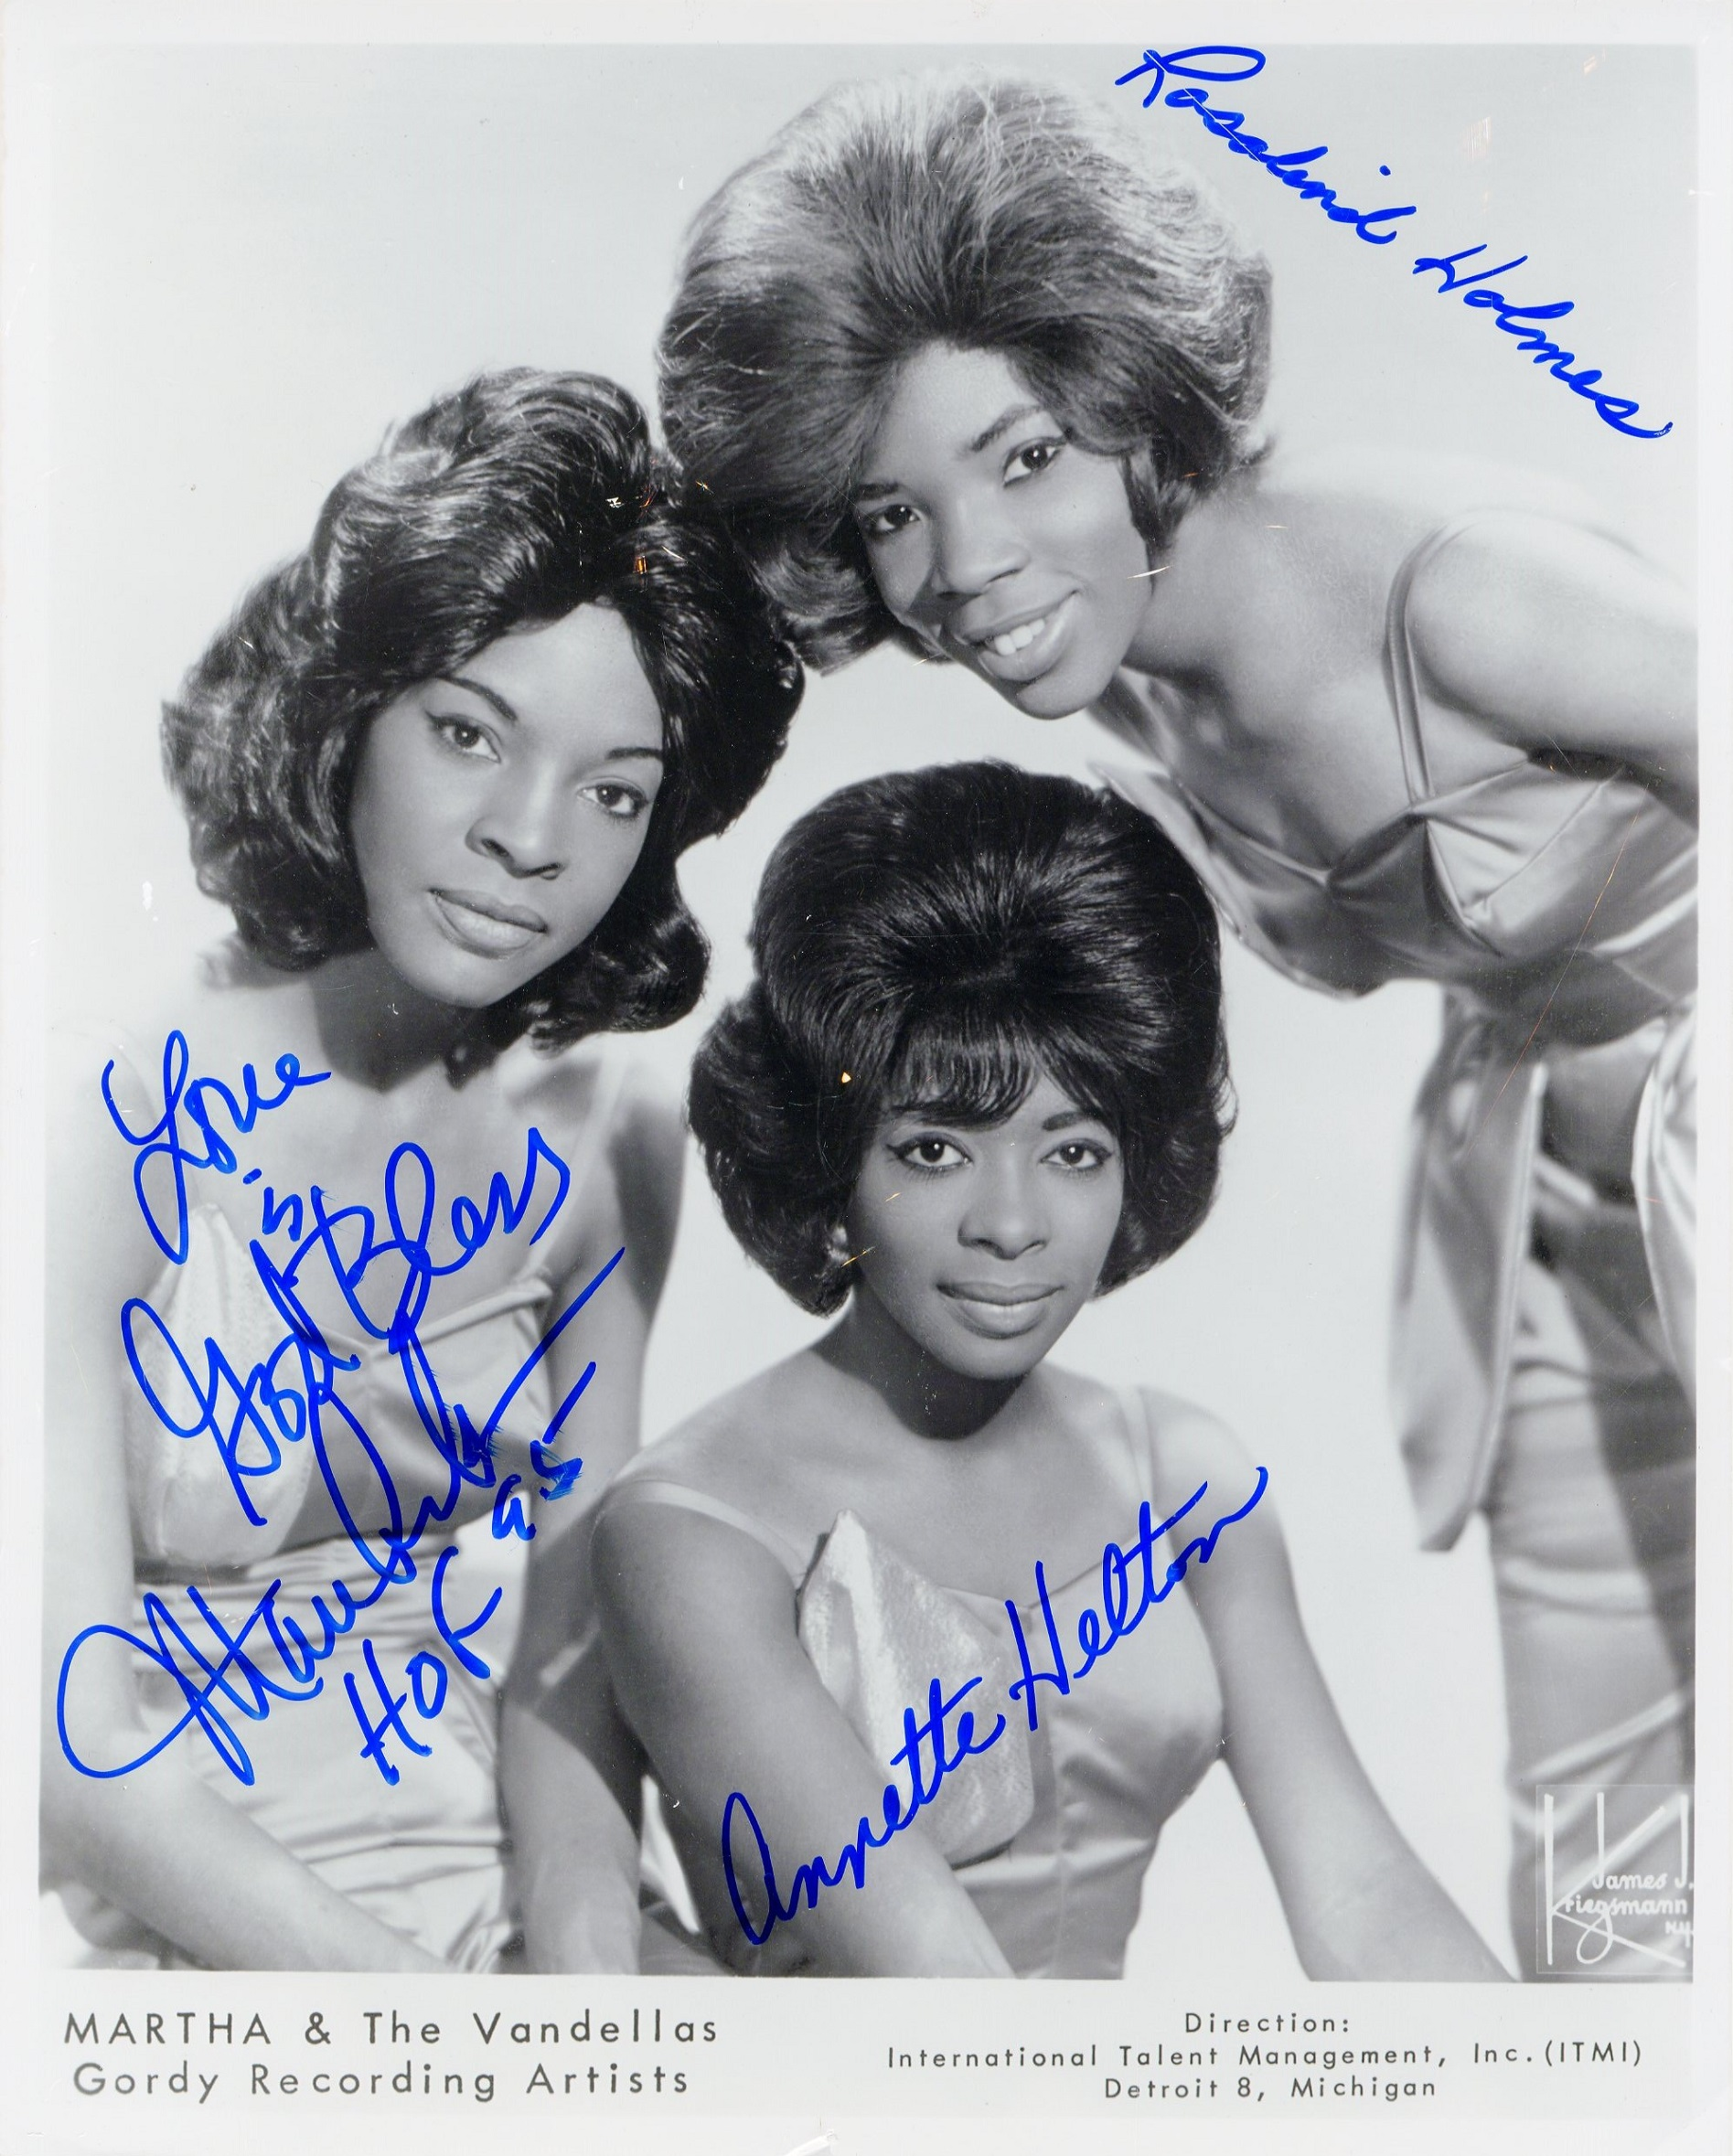 Lot 133 - MARTHA & THE VANDELLAS: American female